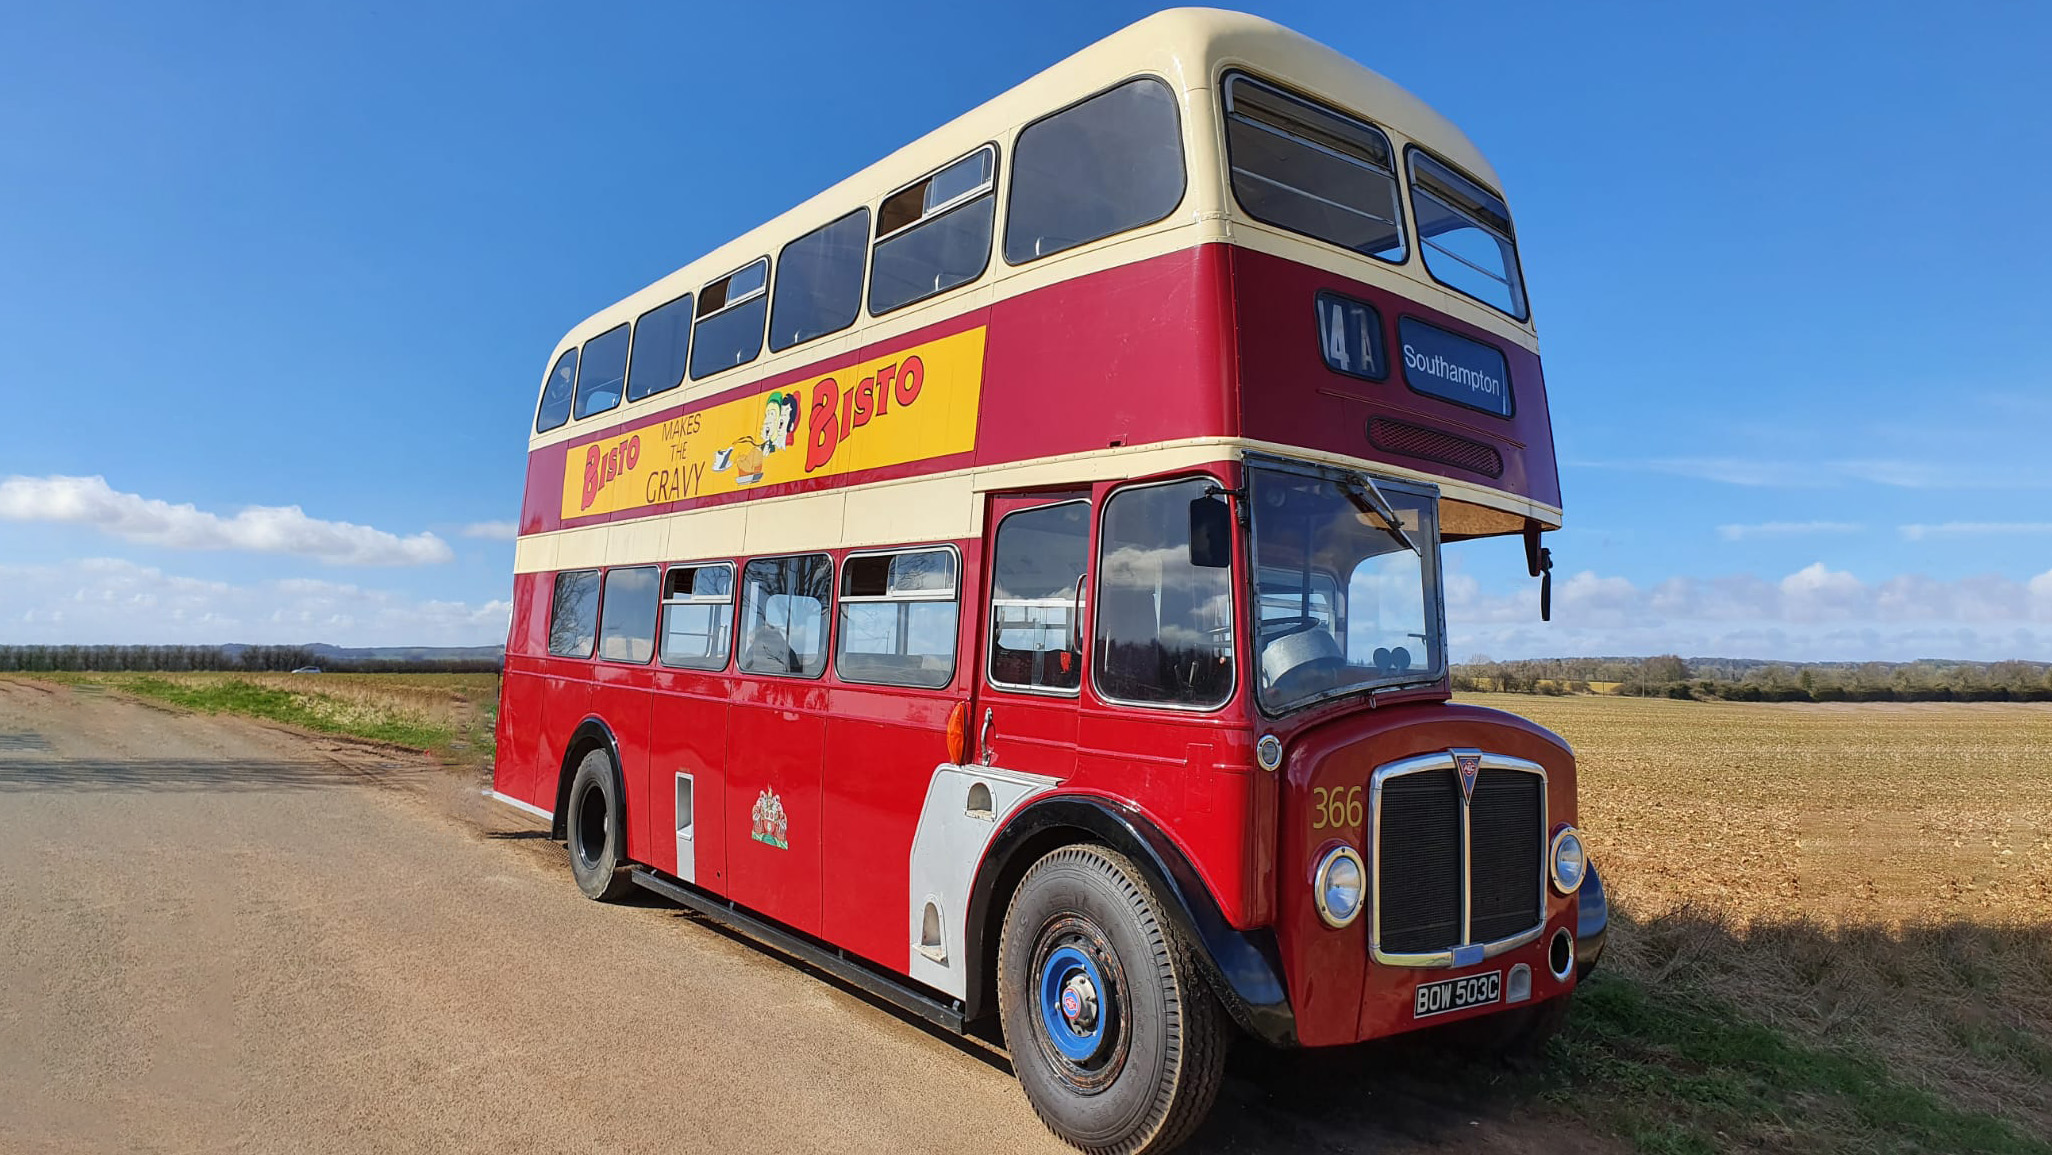 AEC Regent V Double Deck Bus wedding car for hire in Moreton-in-Marsh, Gloucestershire